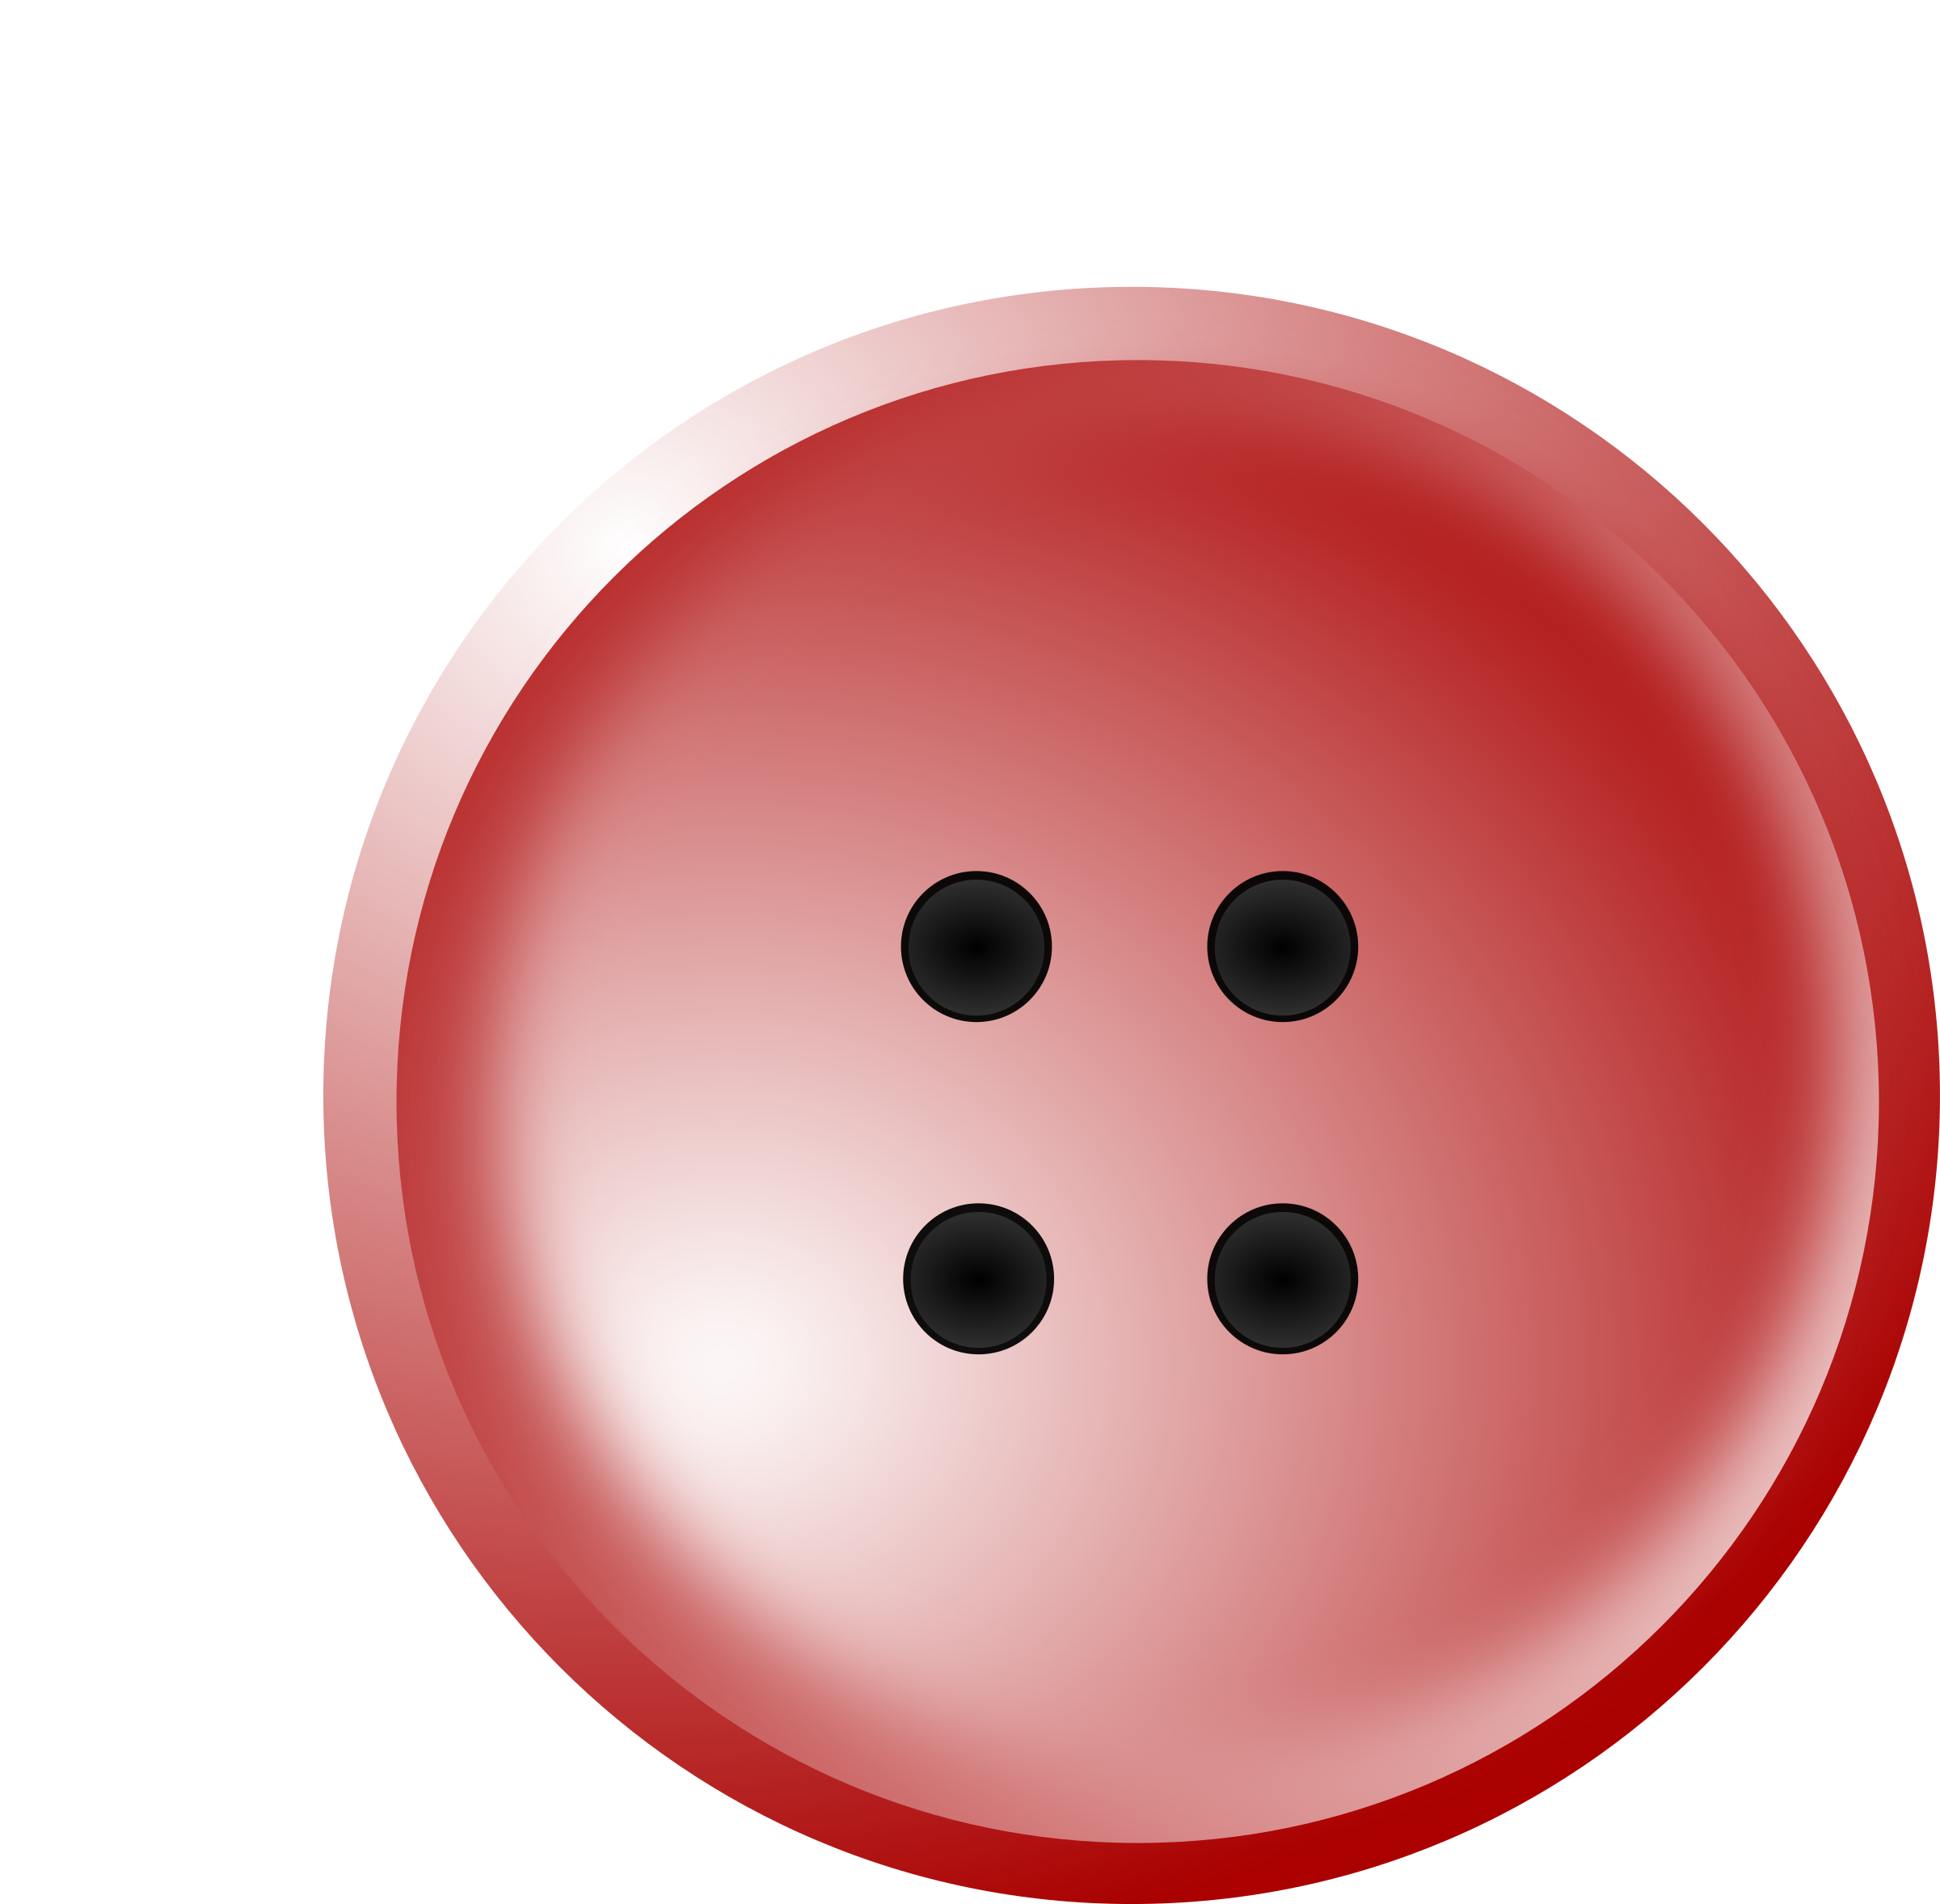 Shirt buttons png. Clipart red button big